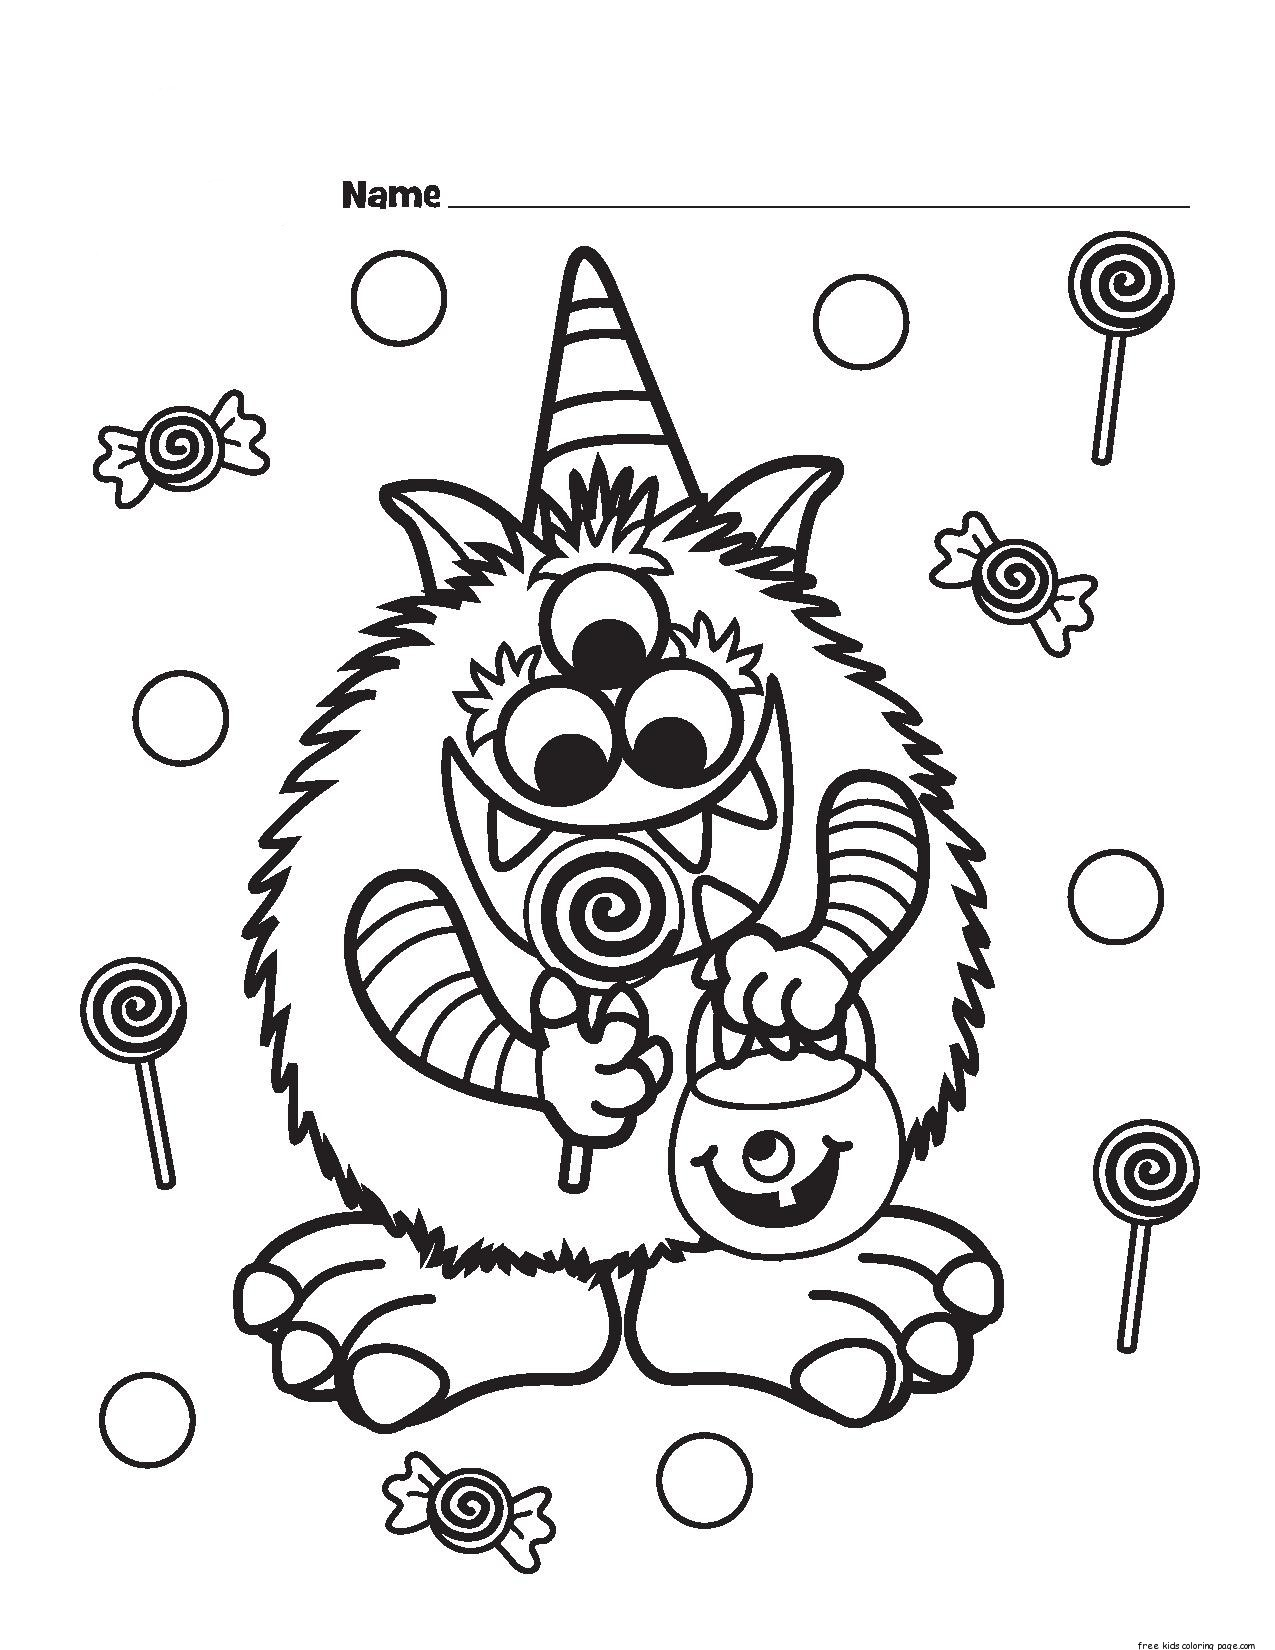 Halloween candy critter printabel coloring page free for Coloring pages for halloween free printable